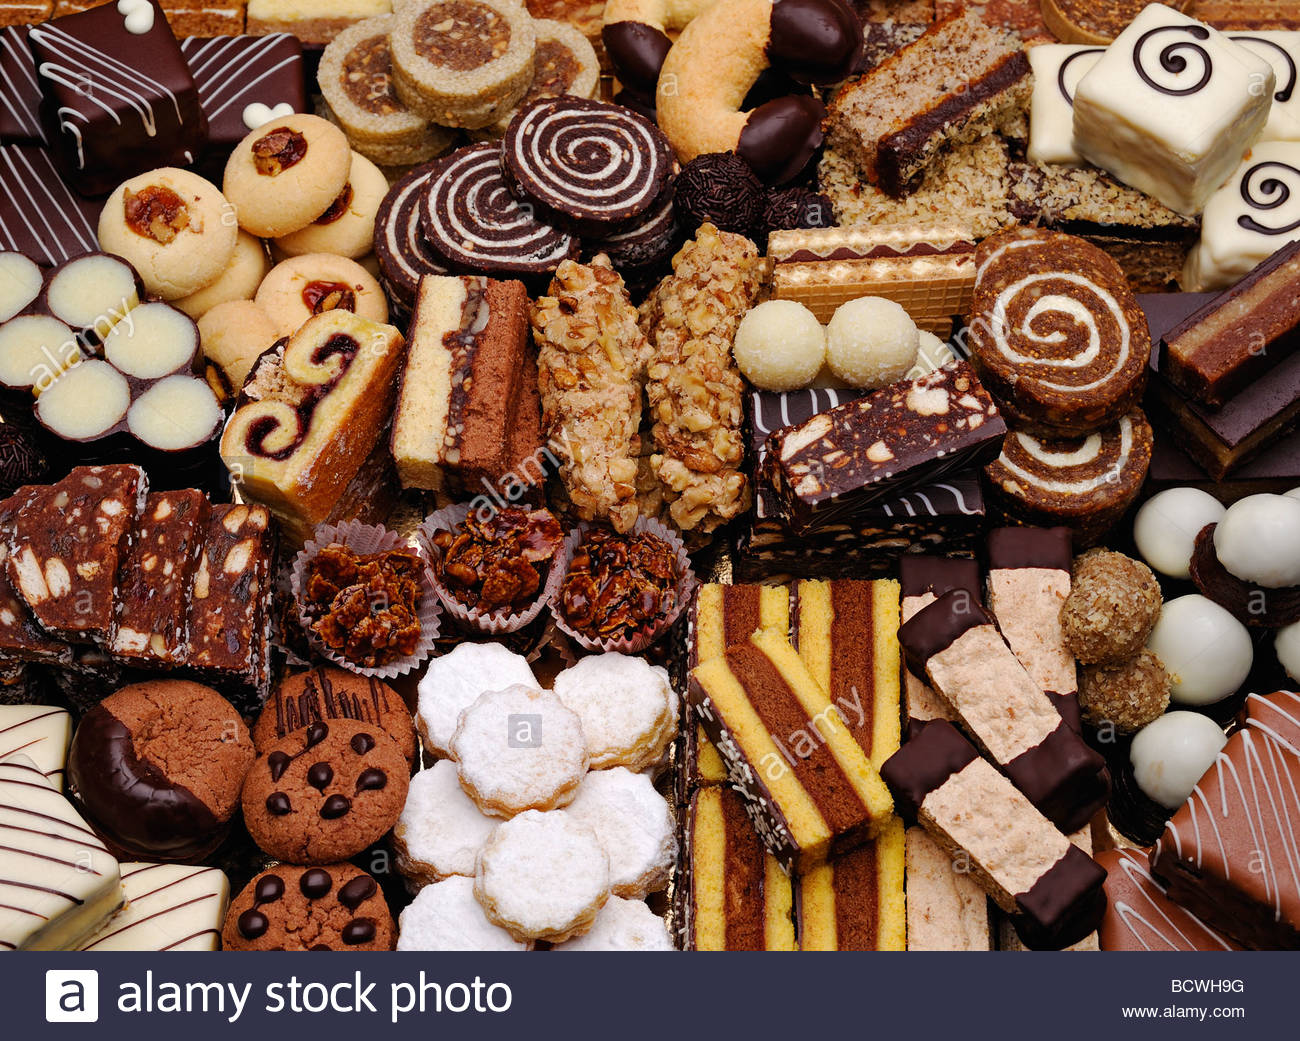 cakes-and-biscuits-BCWH9G